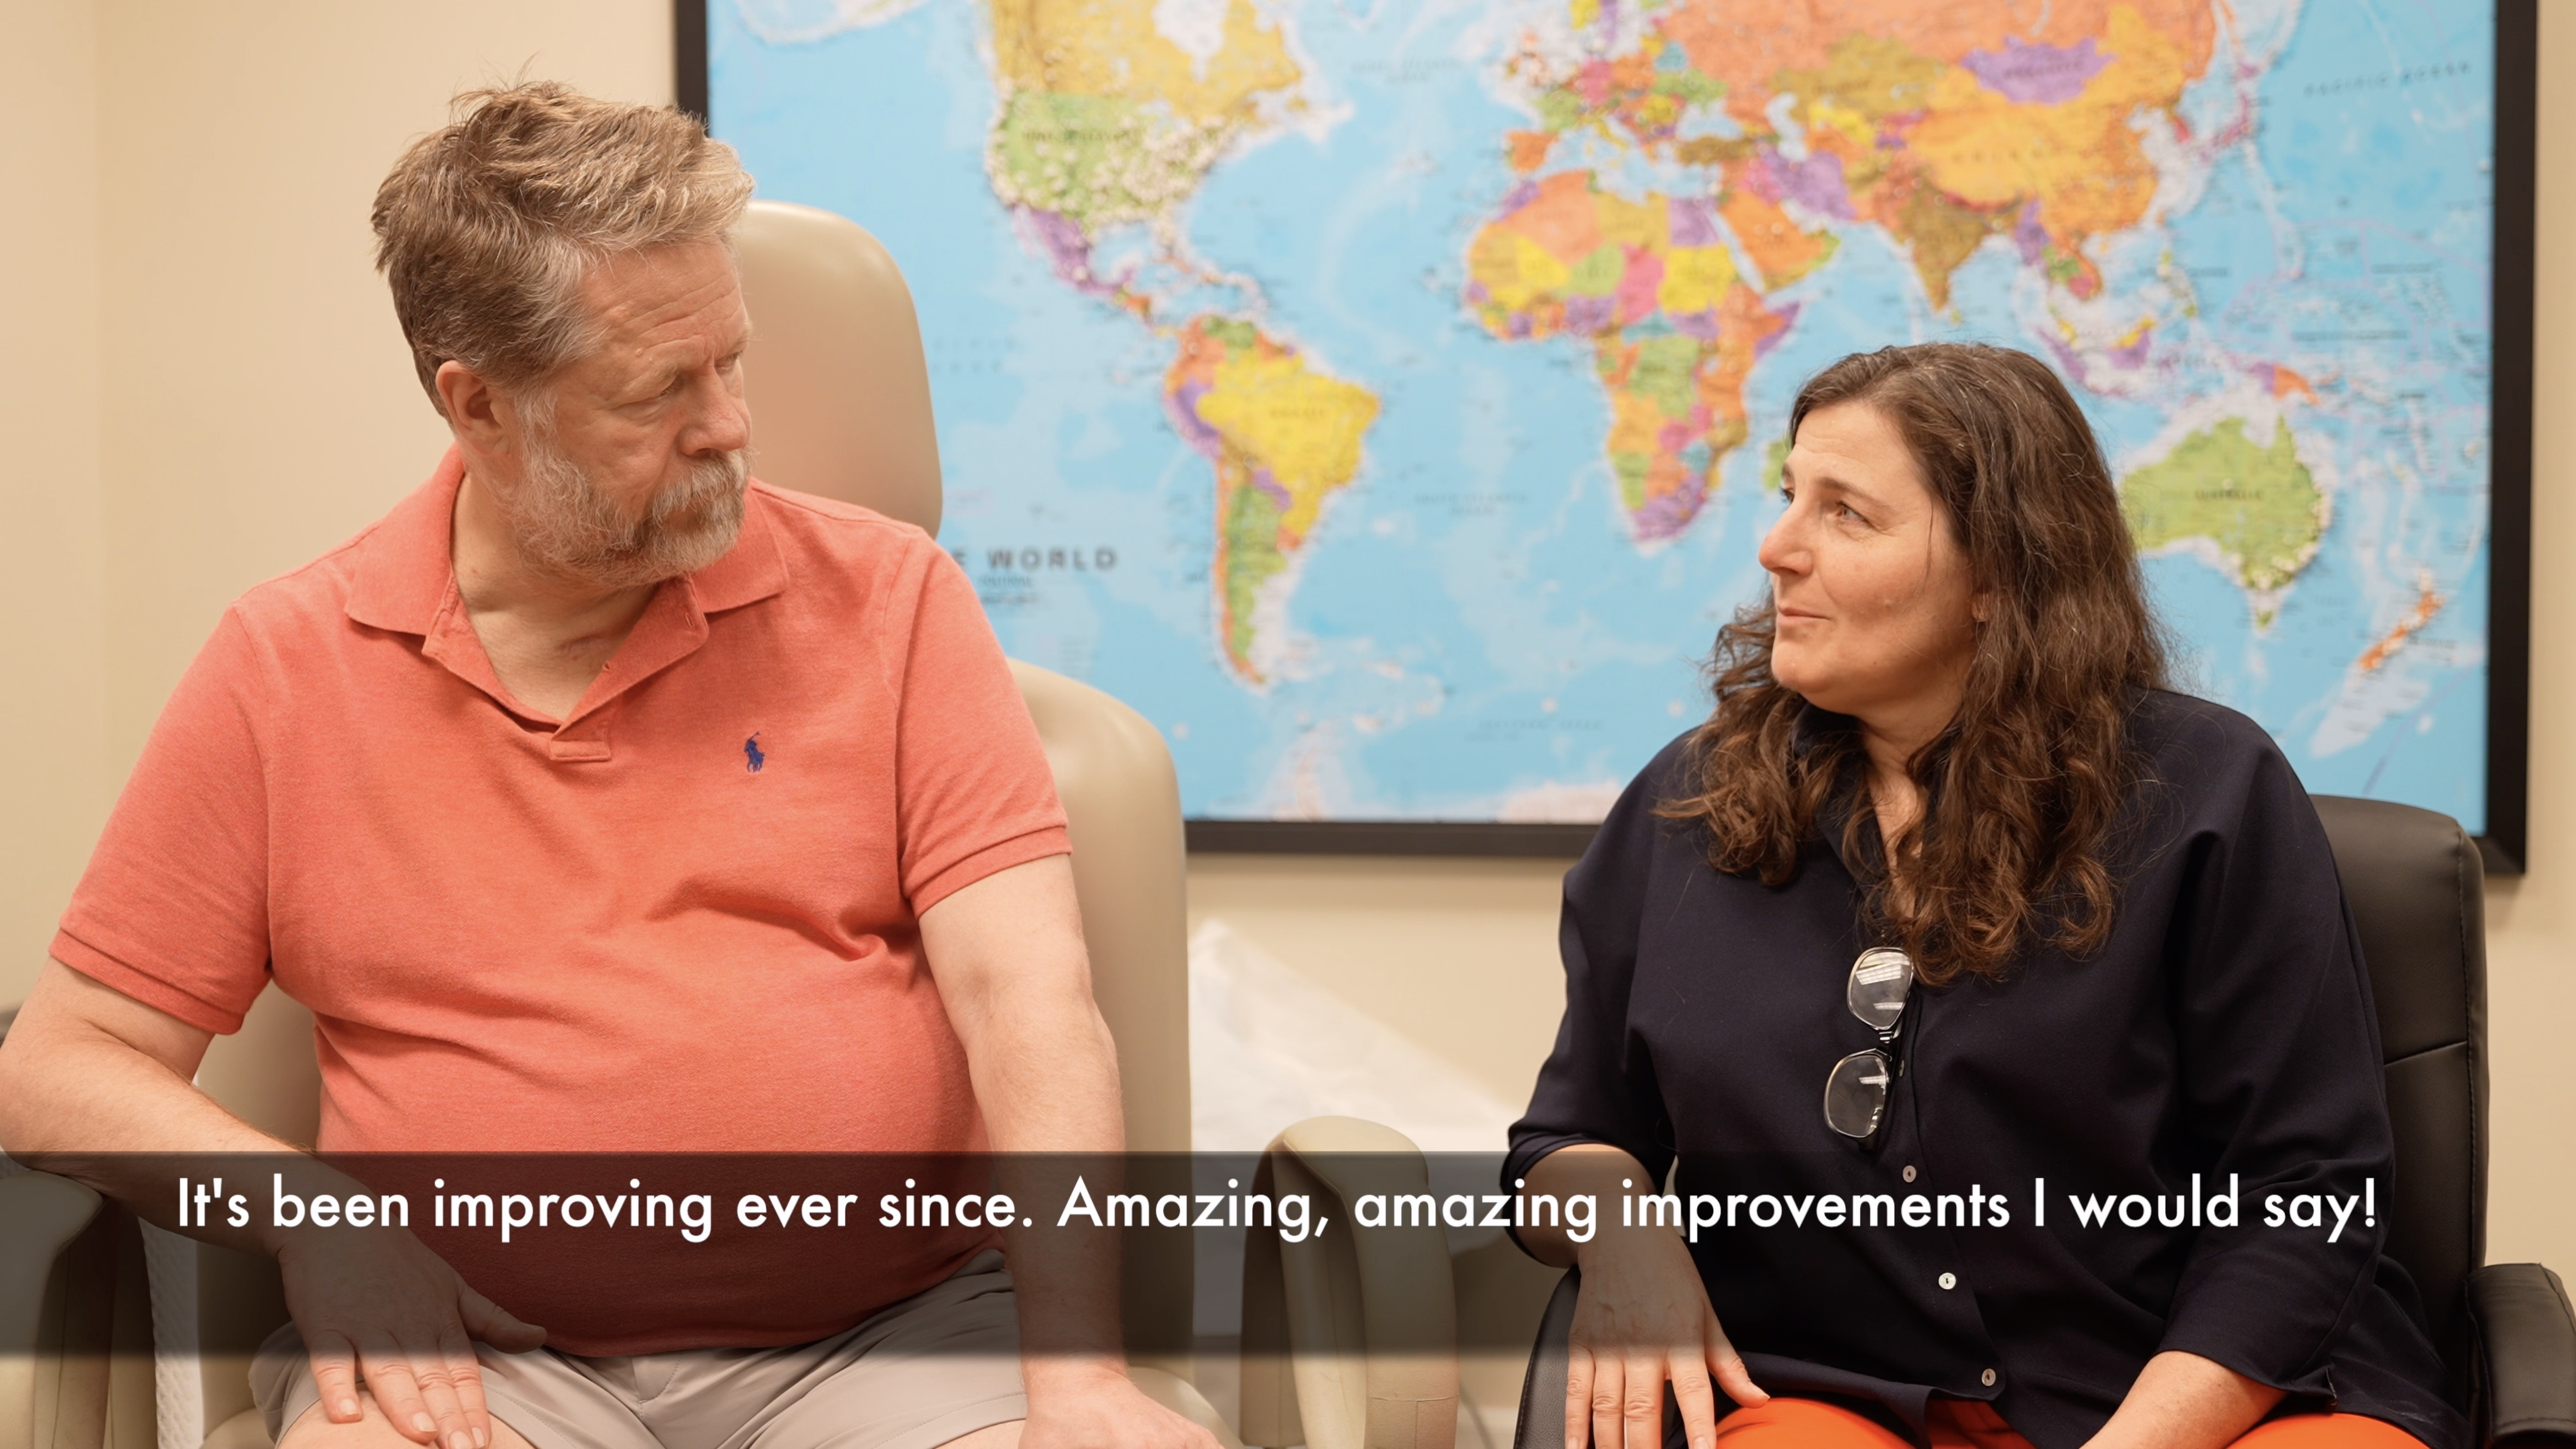 Swedish stroke survivor regains ability to walk and becomes pain-free following treatment by Edward Tobinick, M.D.